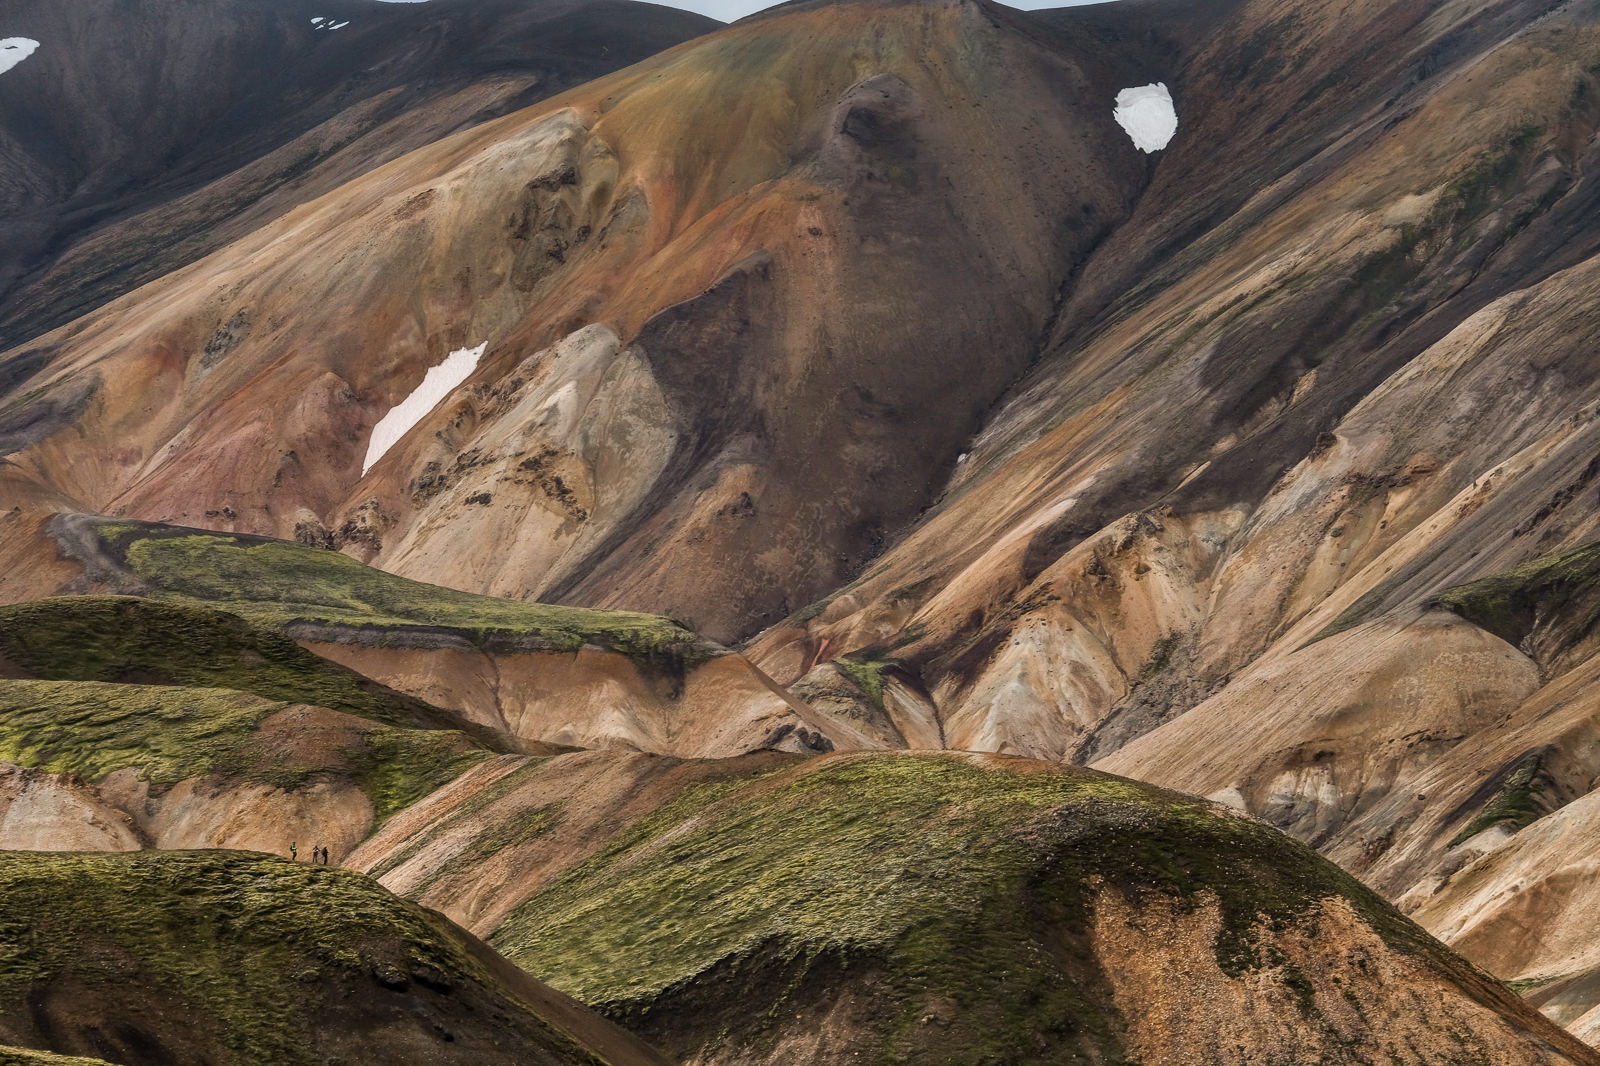 Landmannalaugar, tiny hikers (bottom left) for scale.